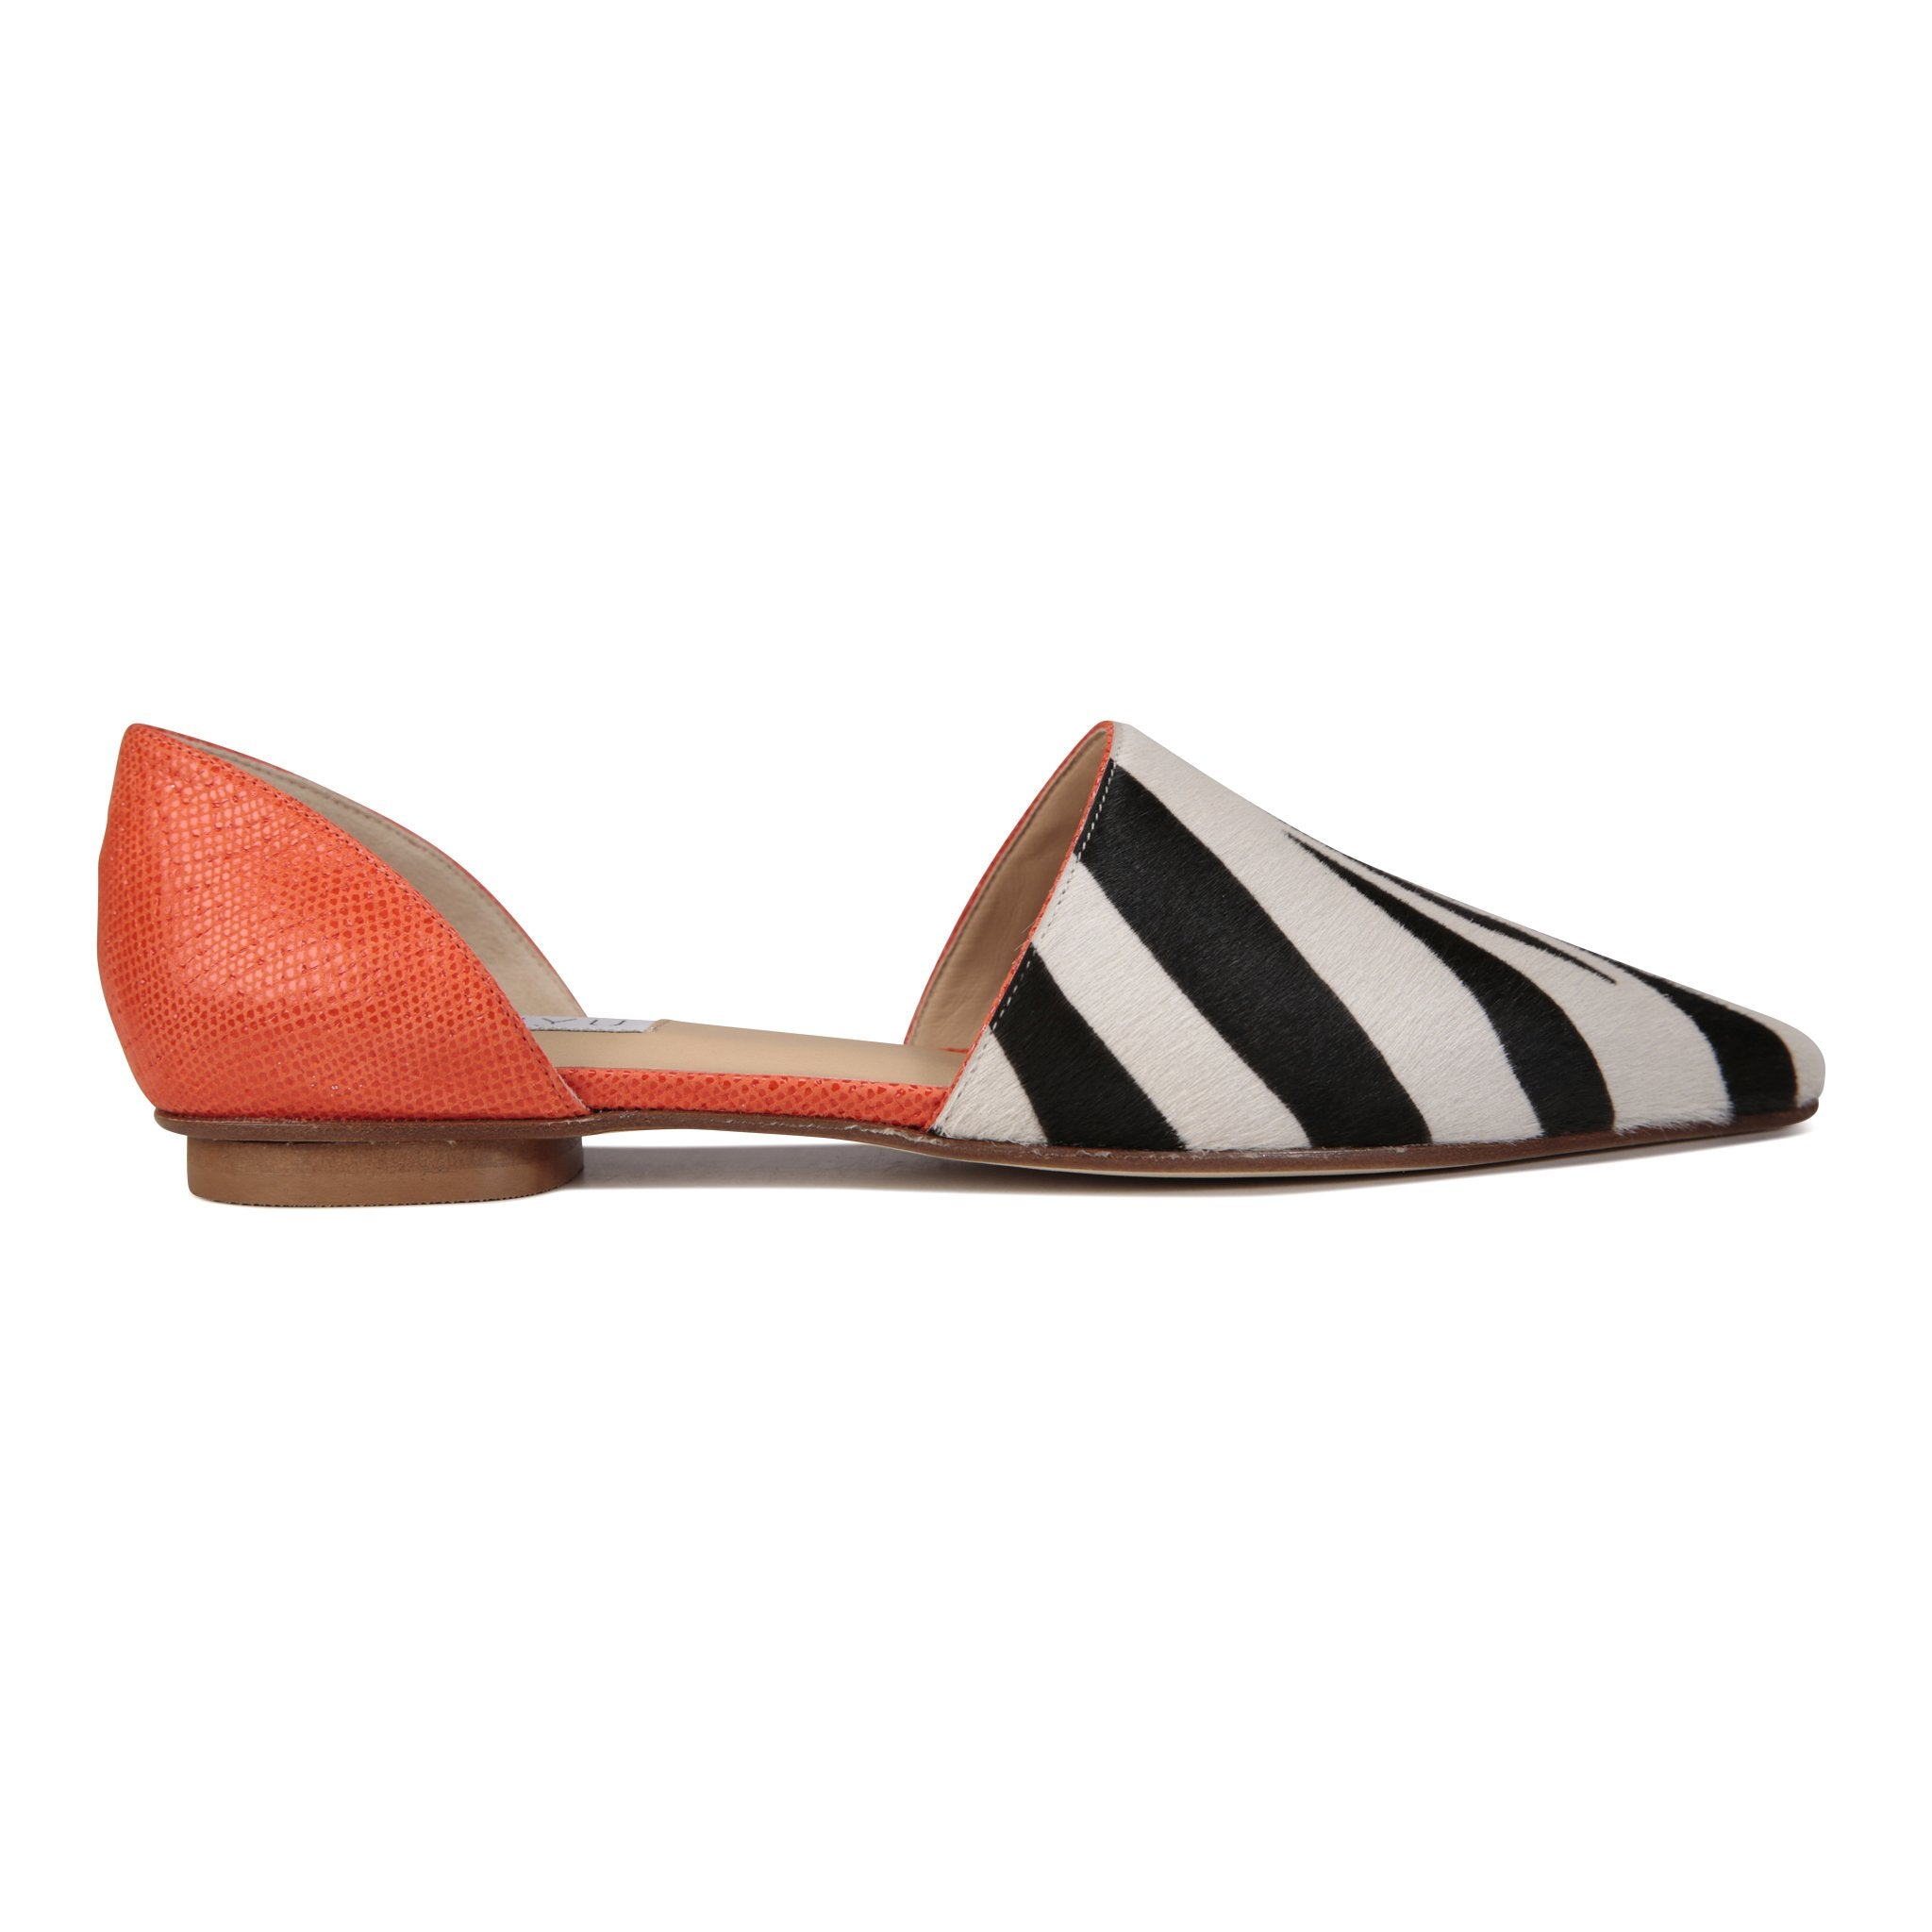 ELBA - Calf Hair Zebra + Karung Tuscan Sunset, VIAJIYU - Women's Hand Made Sustainable Luxury Shoes. Made in Italy. Made to Order.